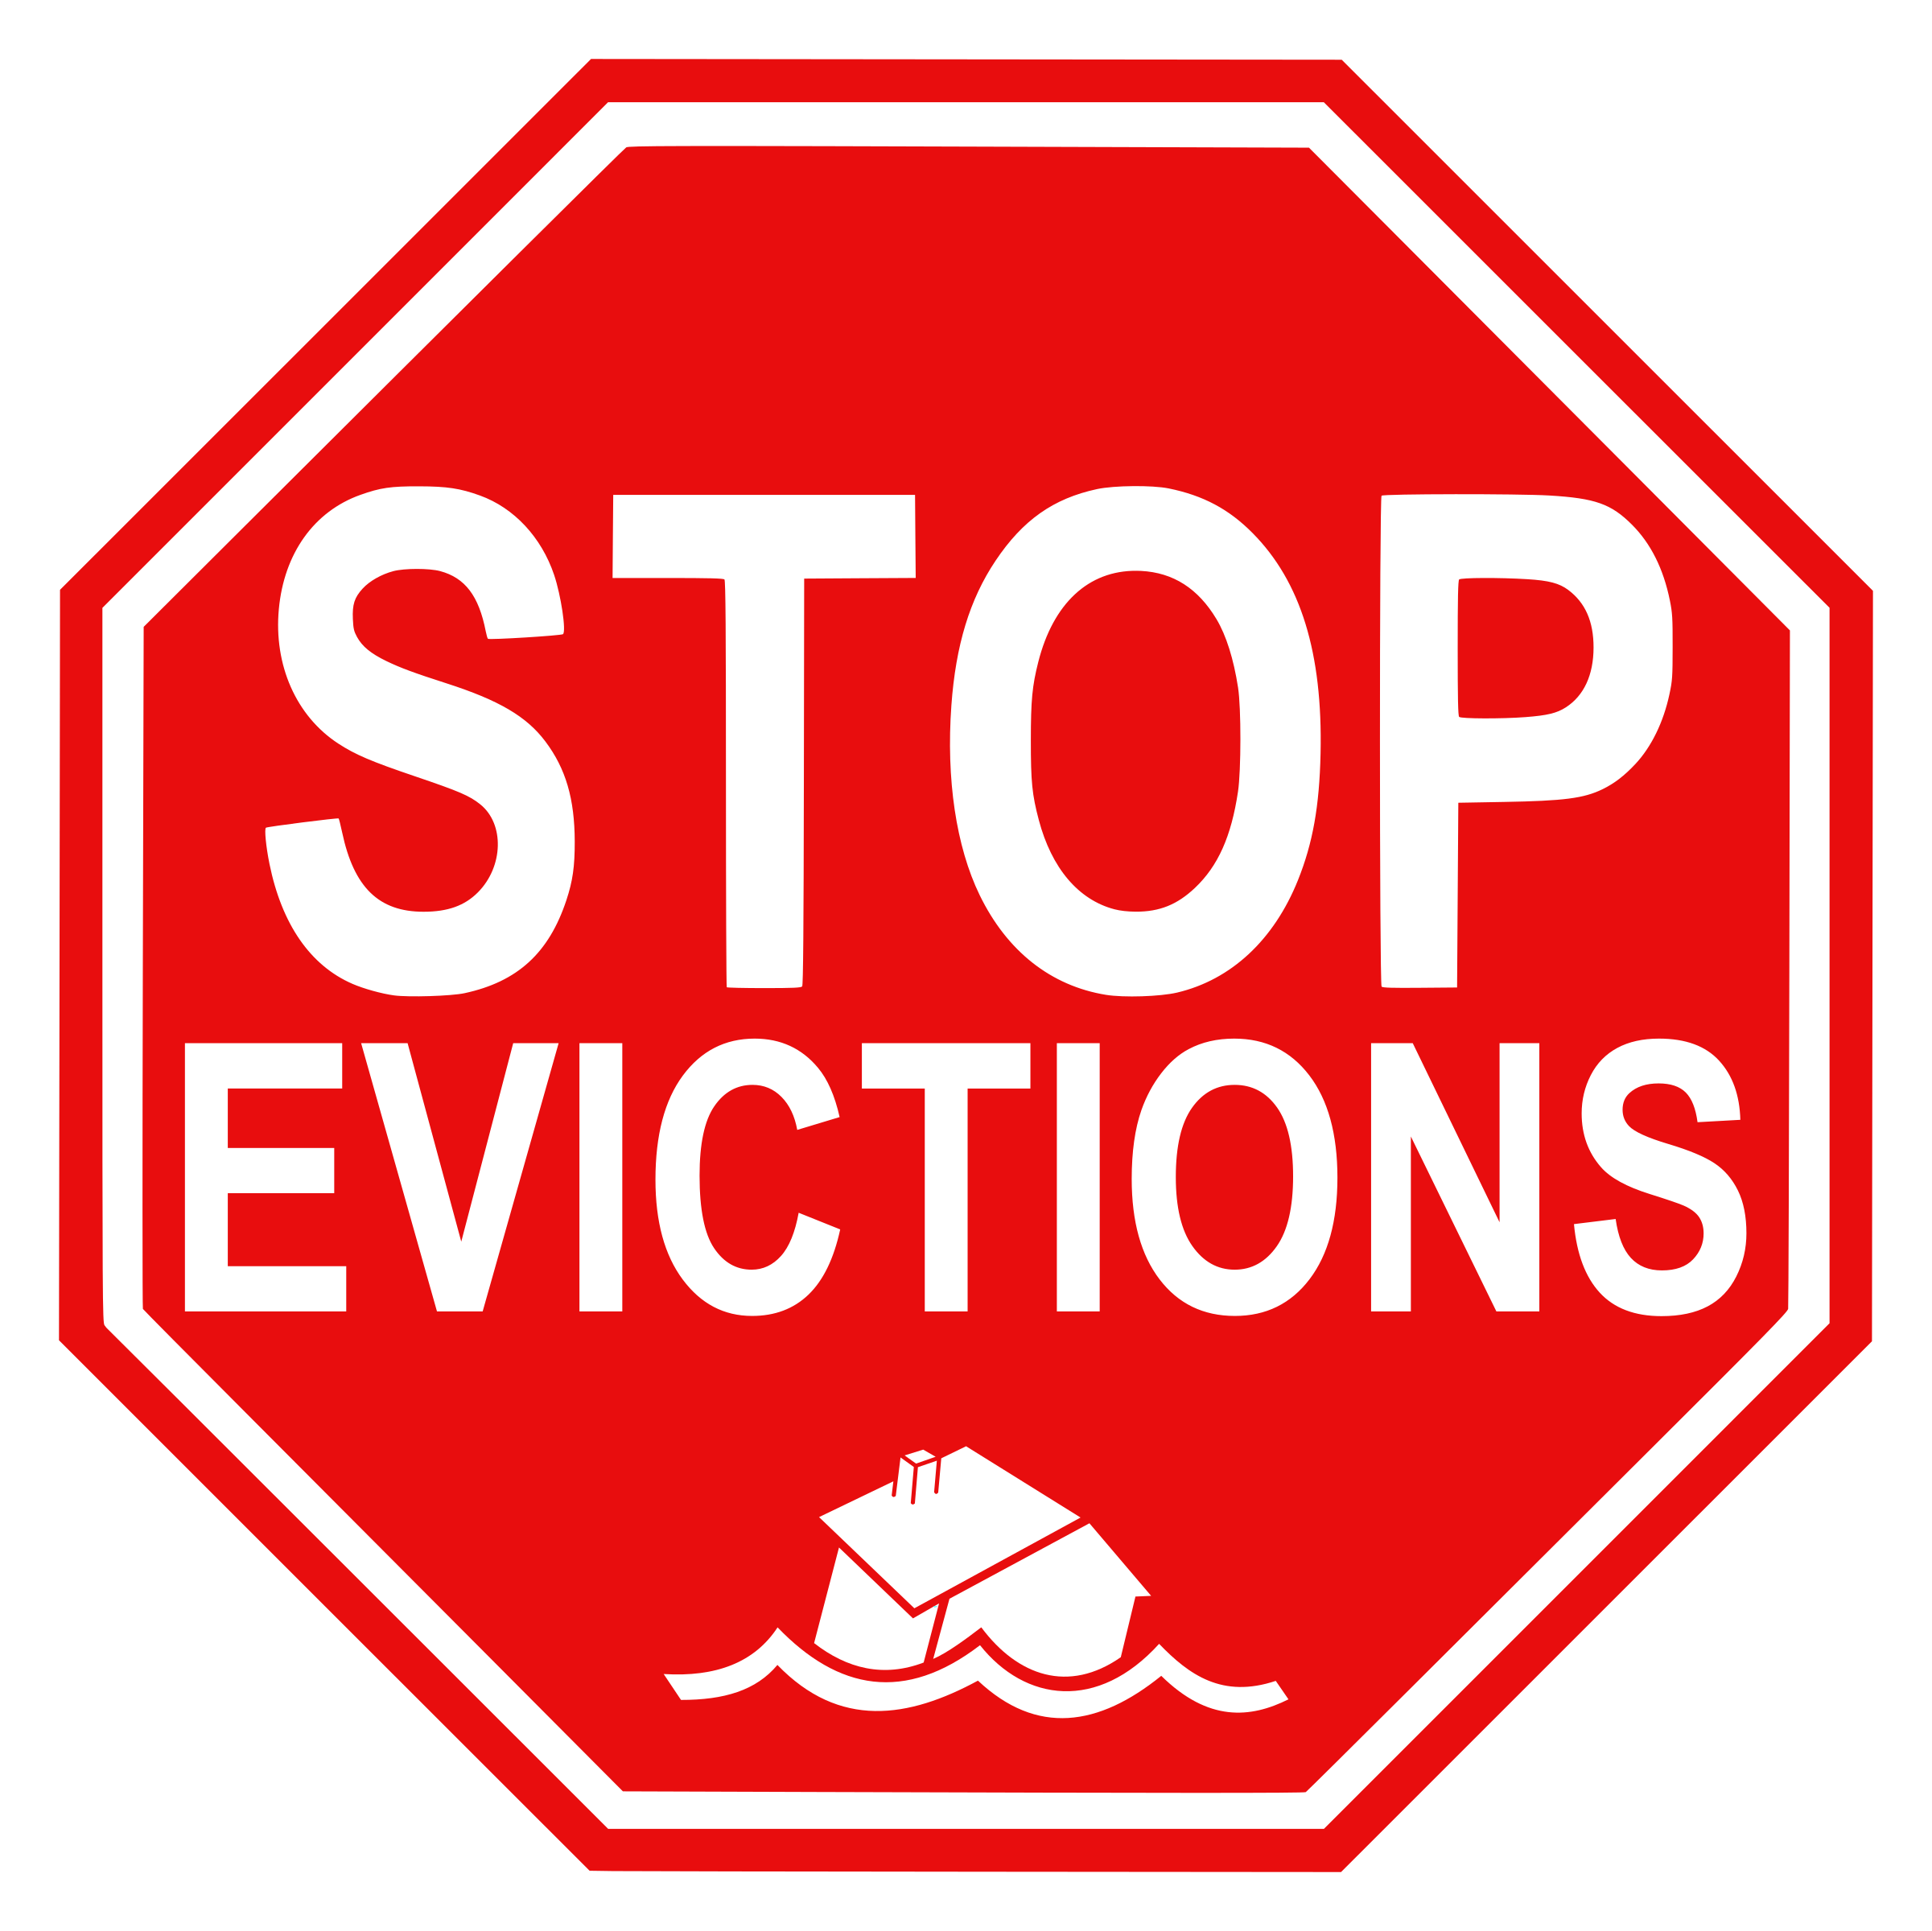 stop evictions by worker